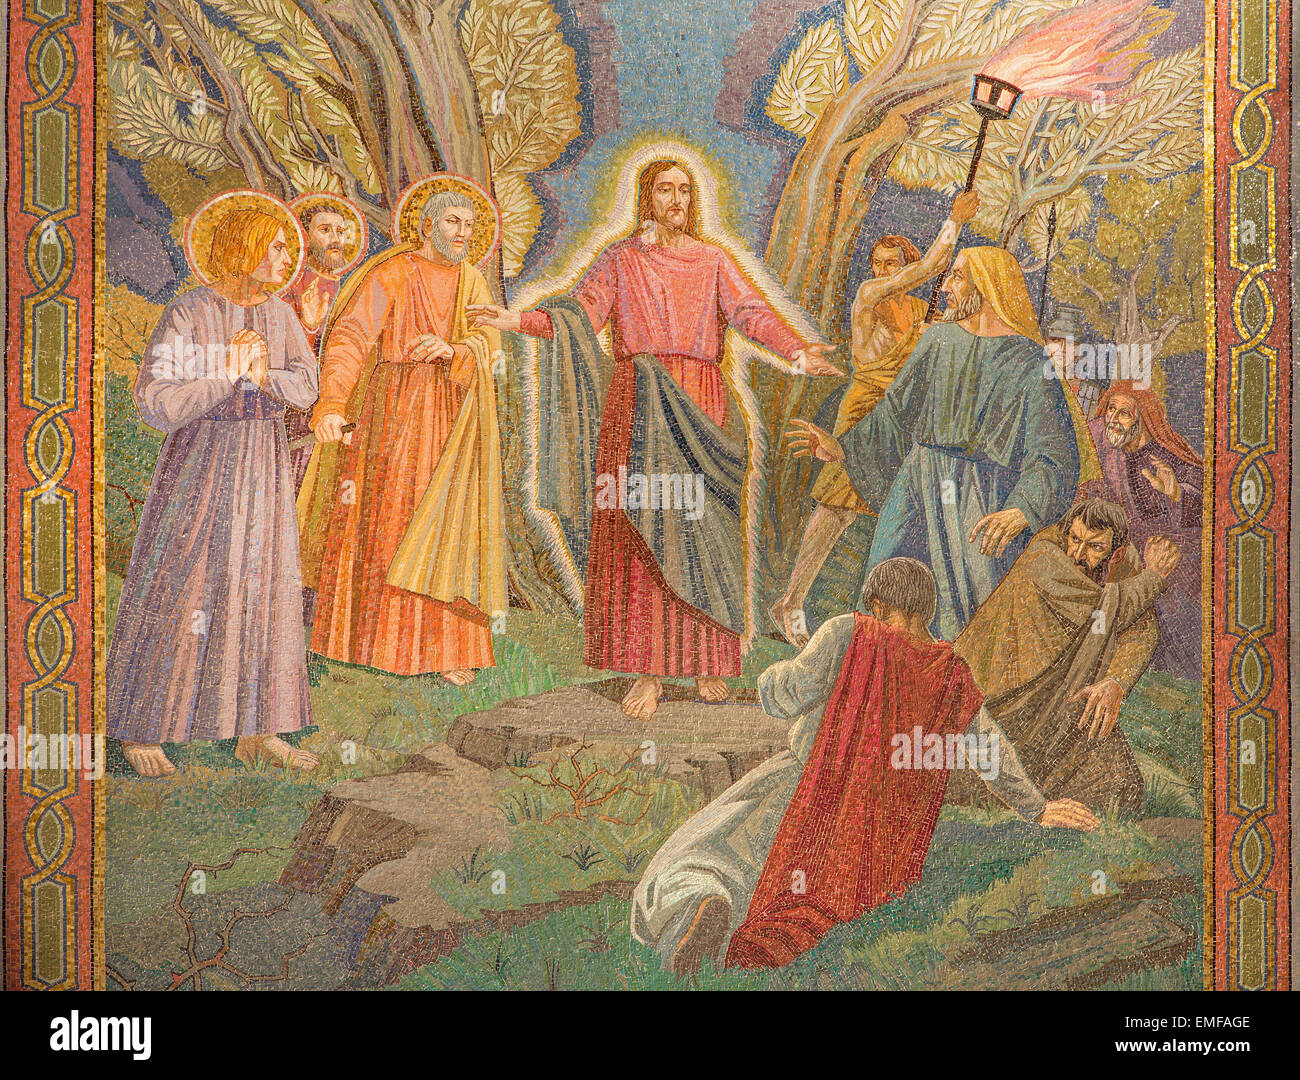 JERUSALEM, ISRAEL - MARCH 3, 2015: The mosaic of the arresting of Jesus in Gethsemane garden in The Church of All Stock Photo